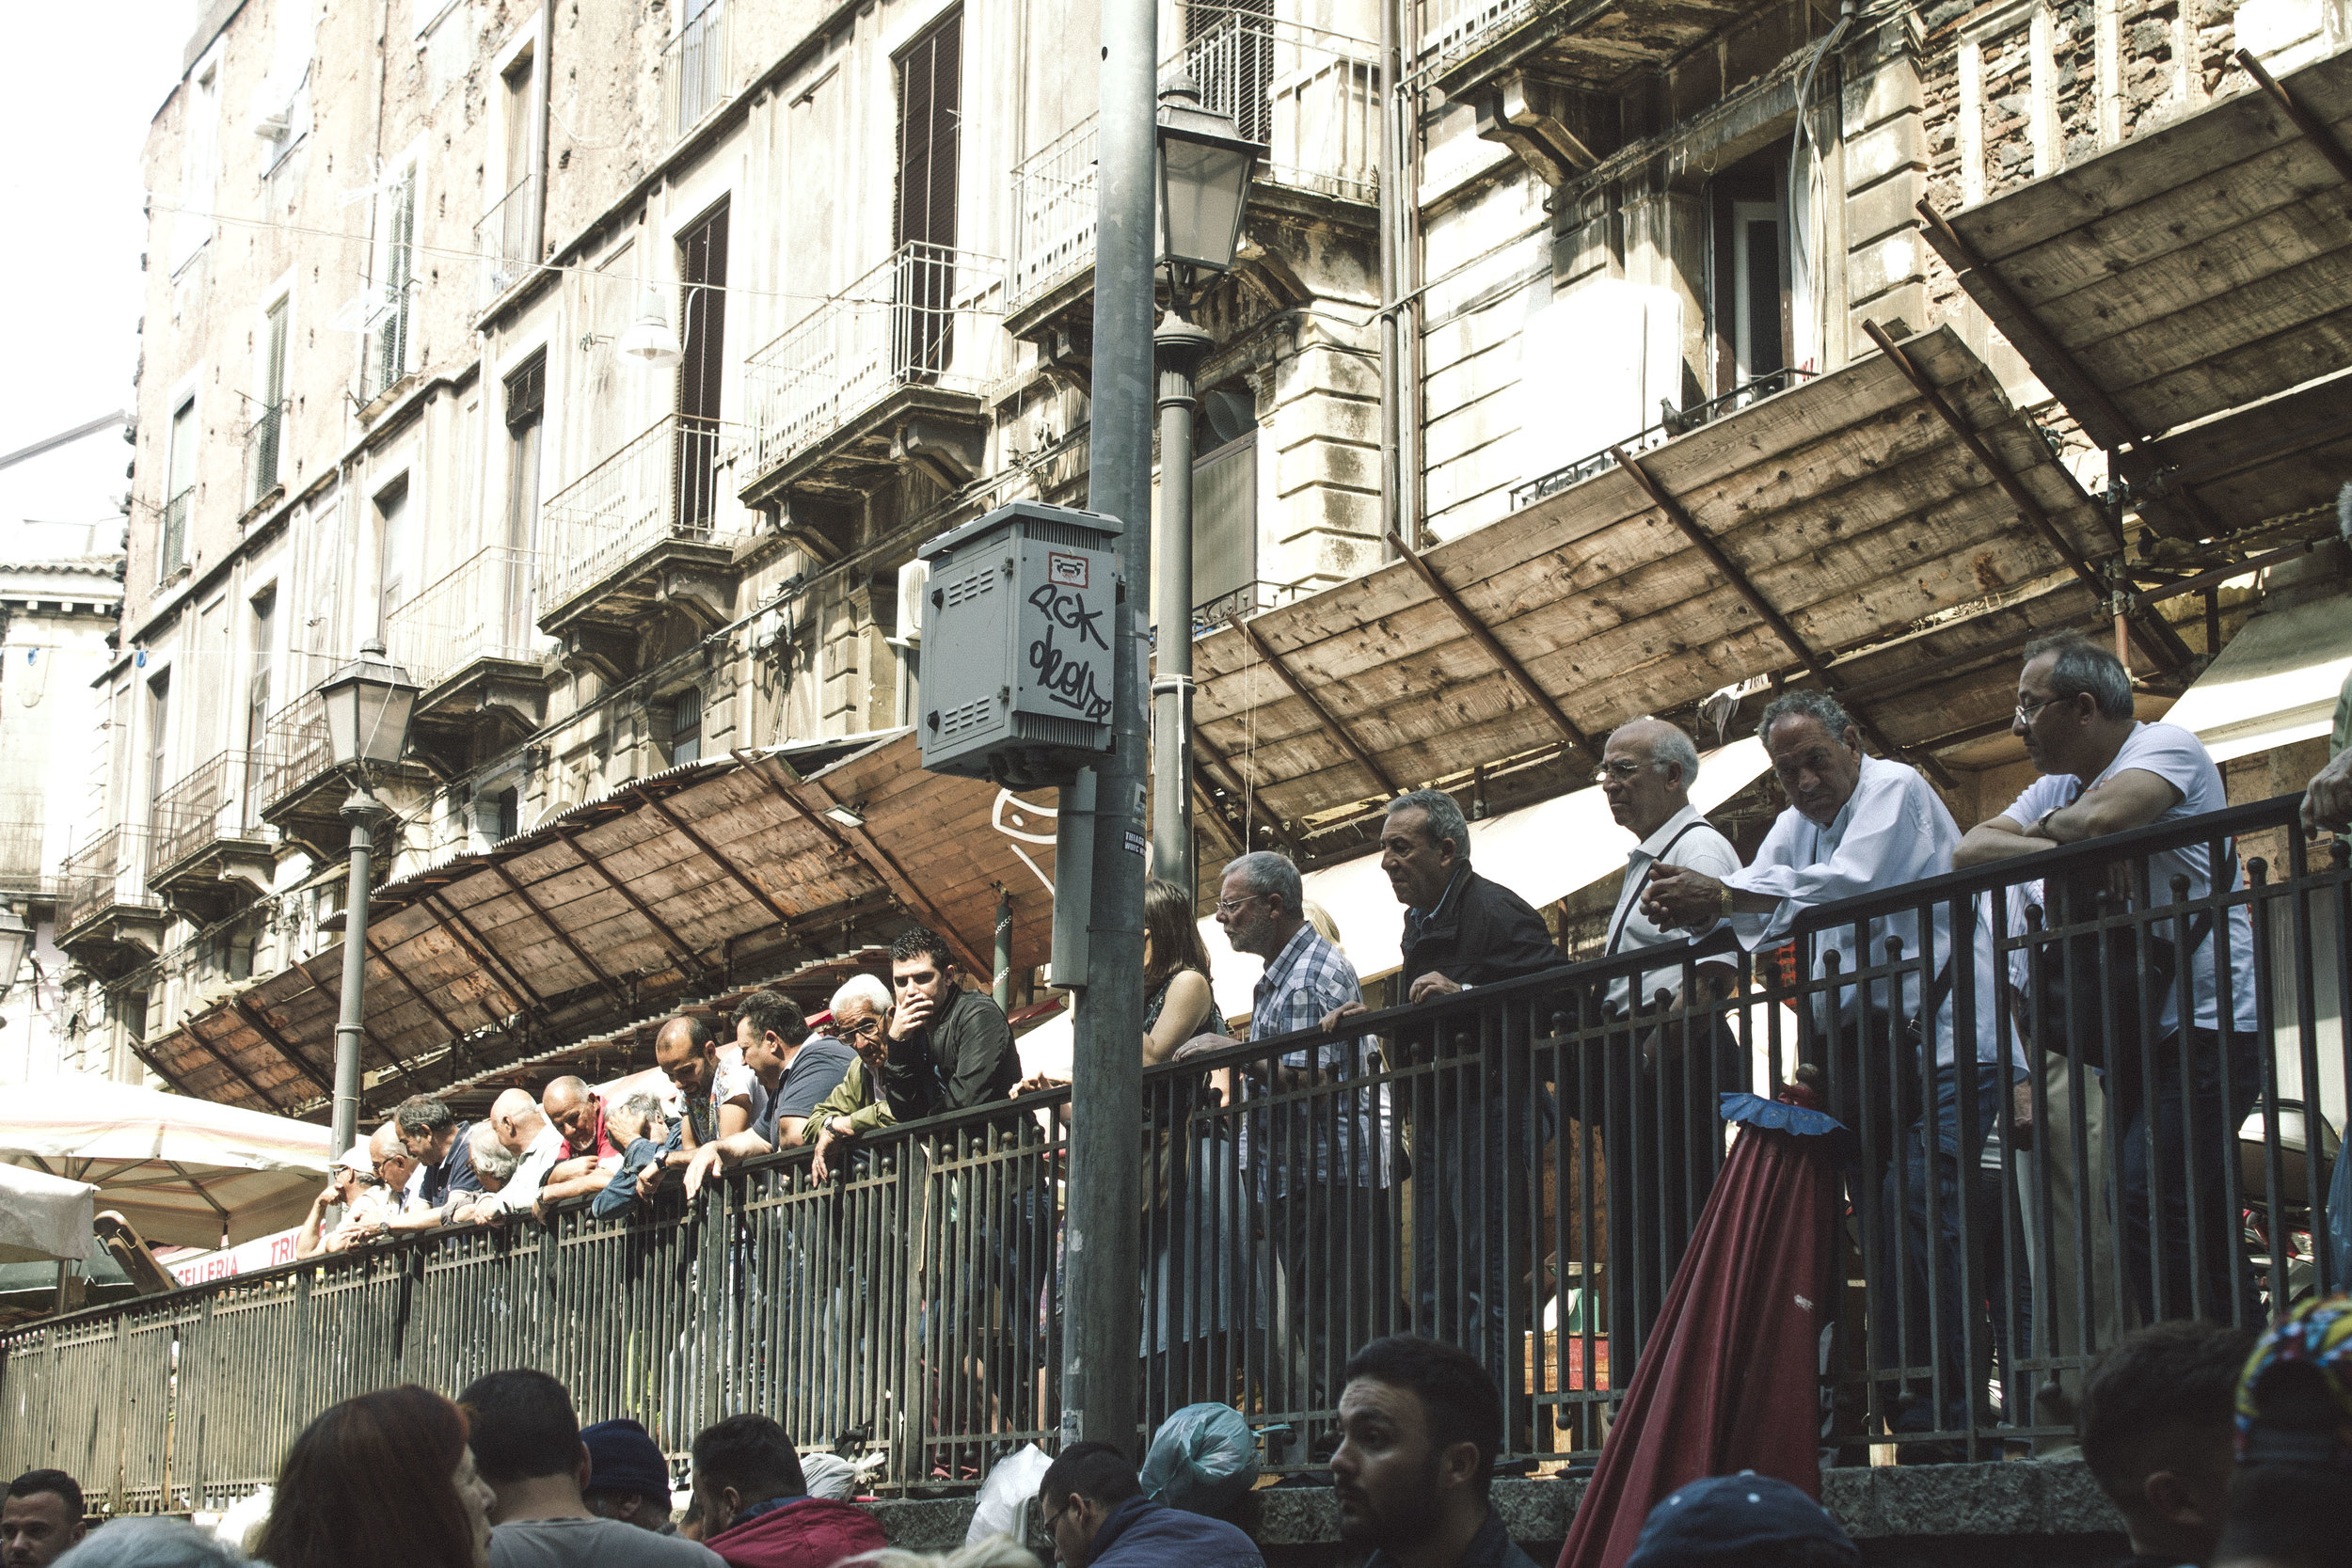 Locals watch the spectacle that is Catania's fish market